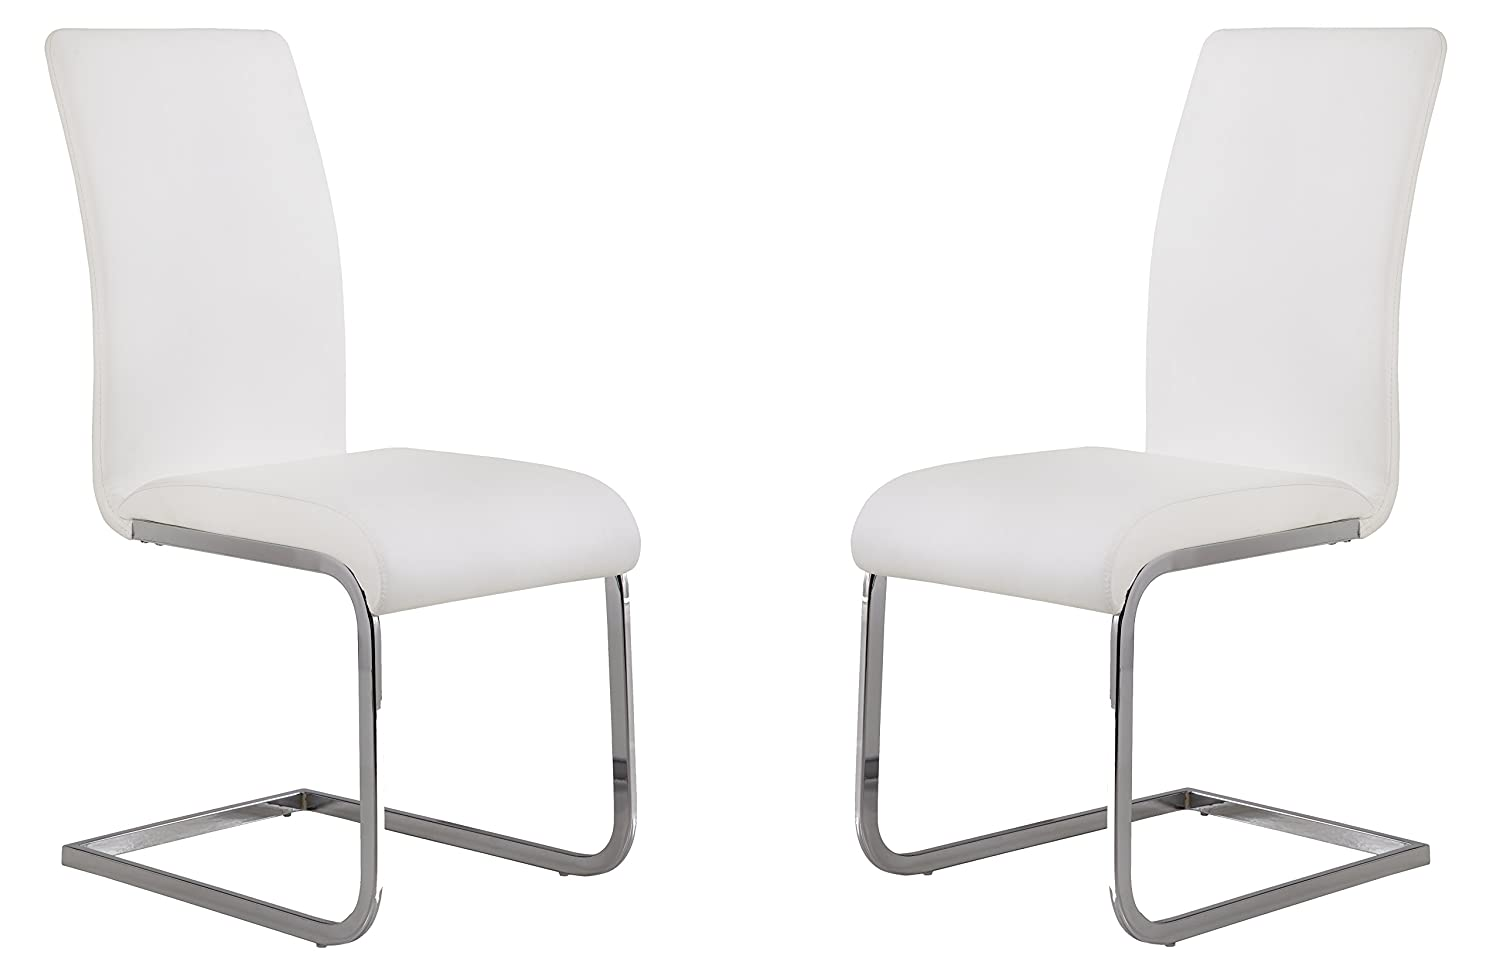 Amazon.com - Armen Living LCAMSIWH Amanda Dining Chair Set of 2 in White and Chrome Finish - Chairs